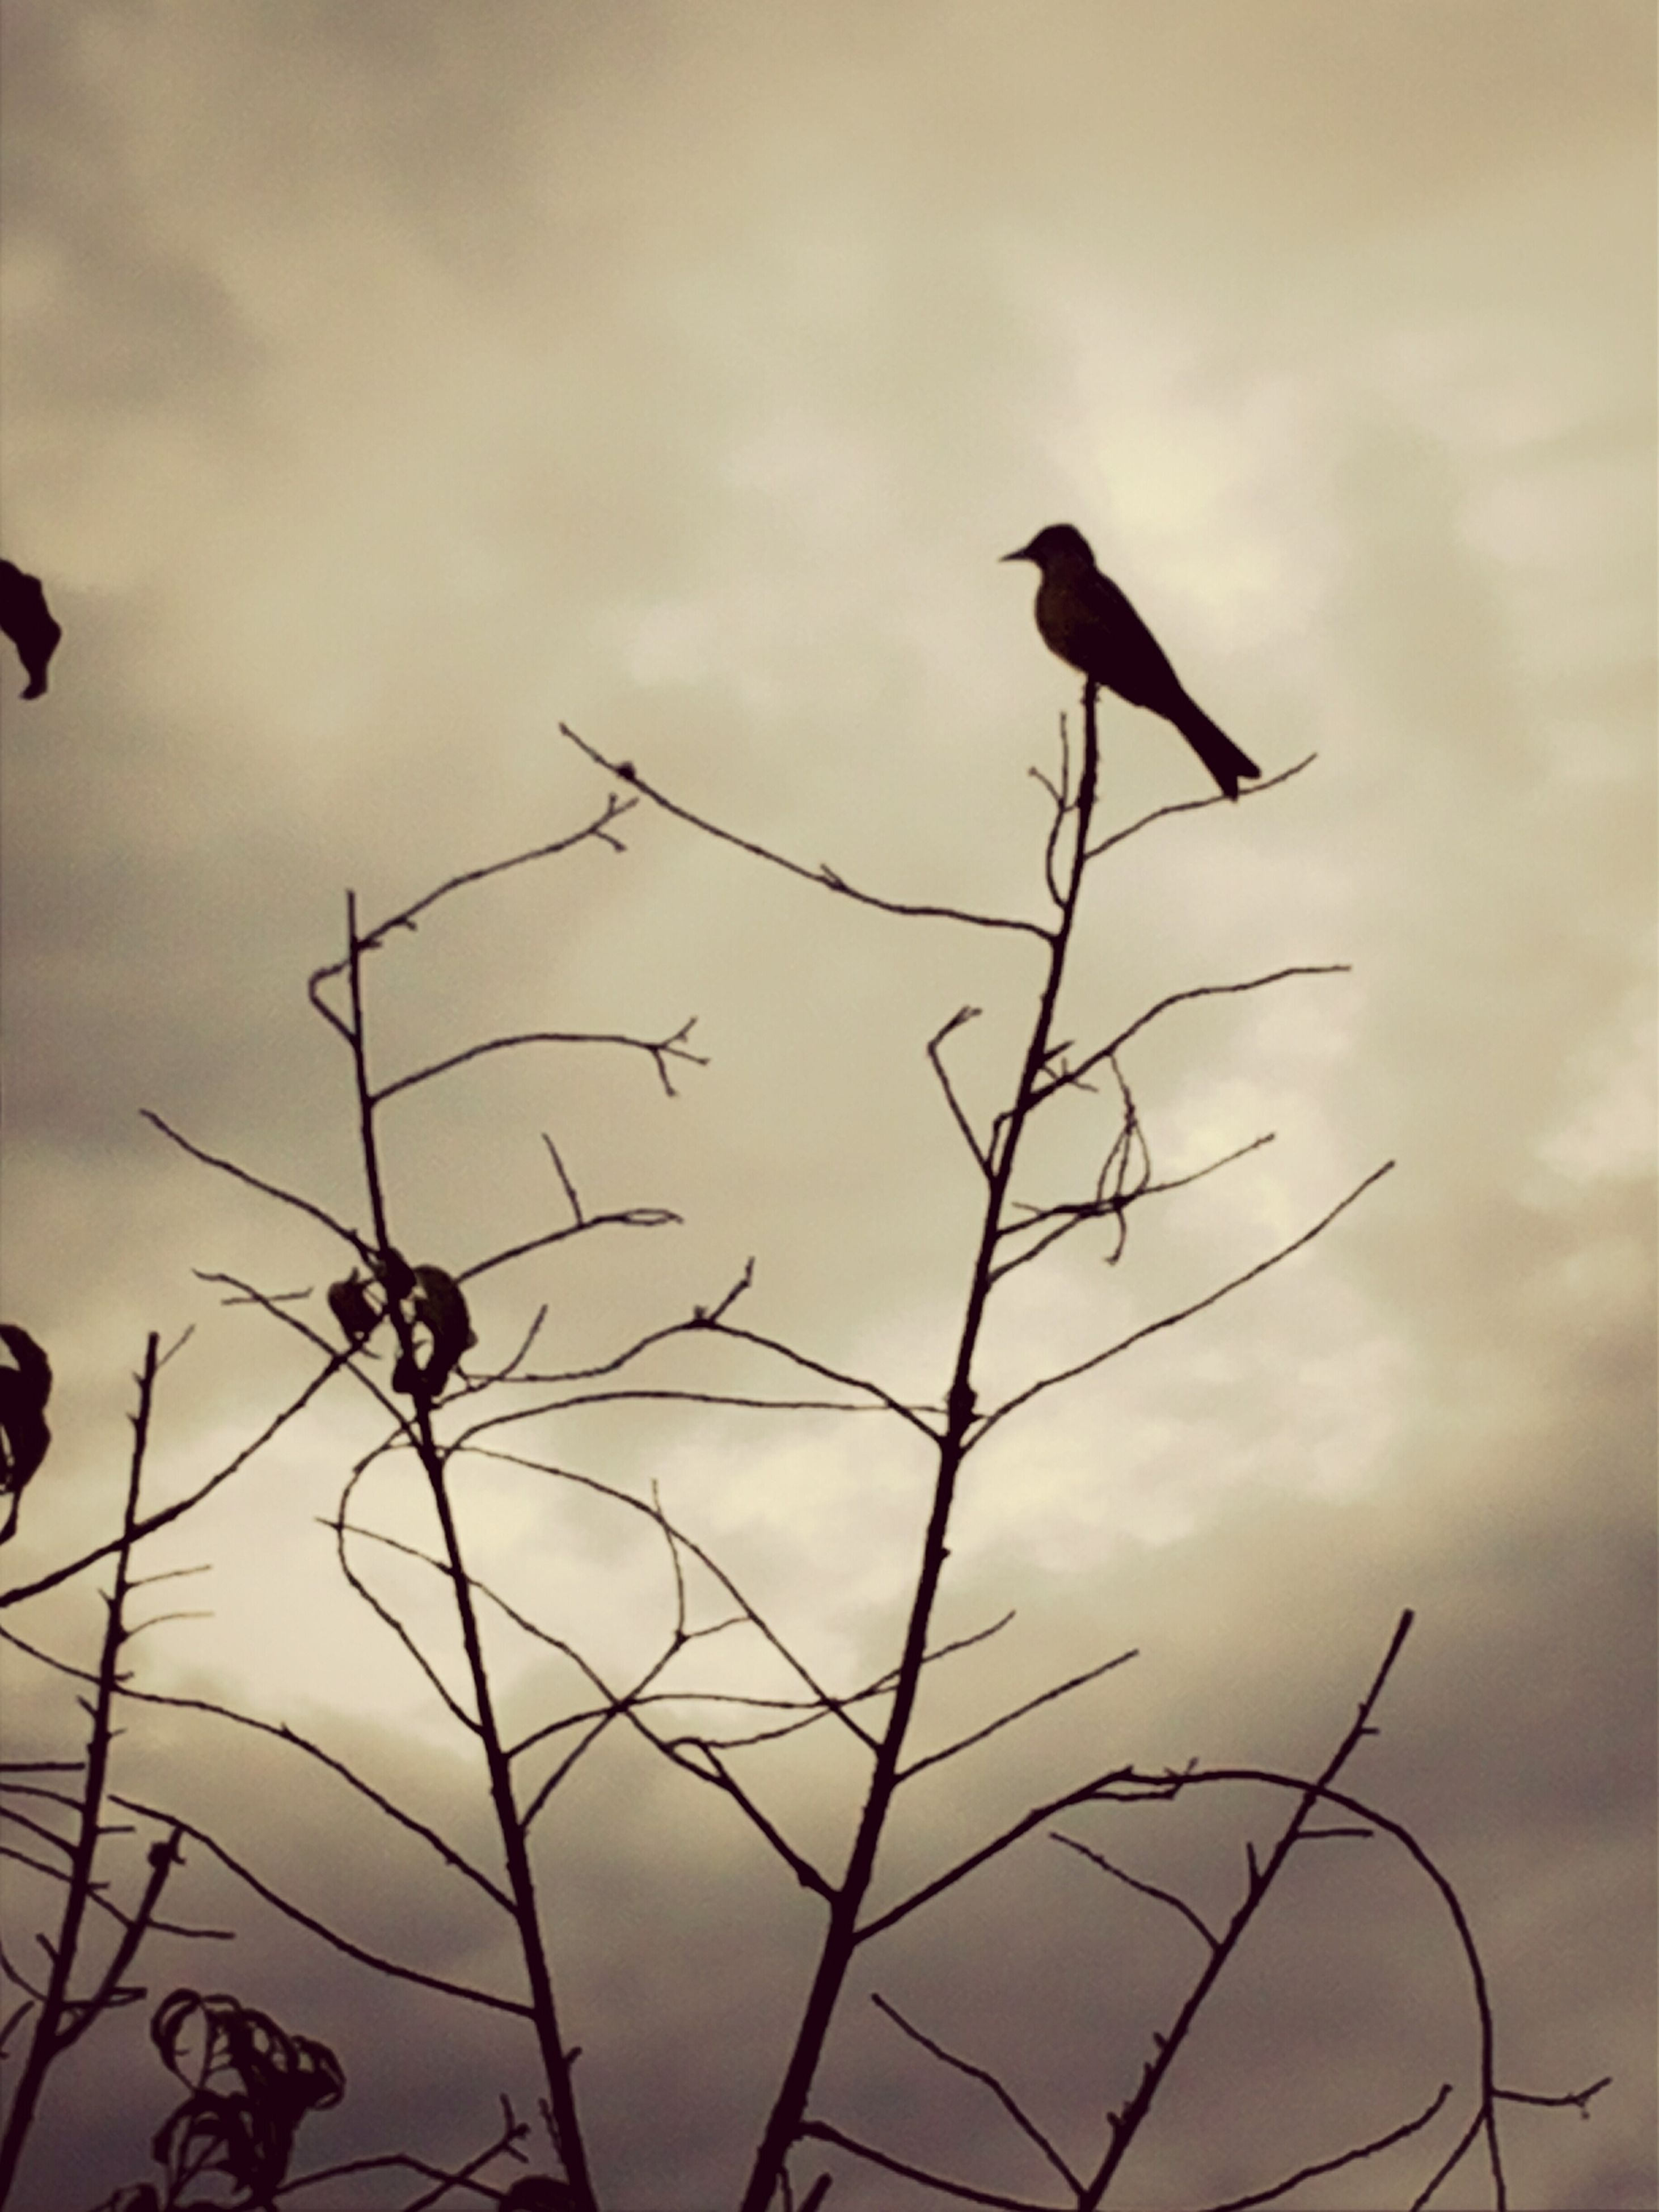 bird, animal themes, animals in the wild, wildlife, sky, perching, bare tree, low angle view, silhouette, branch, one animal, nature, tranquility, cloud - sky, beauty in nature, outdoors, dusk, no people, twig, sunset